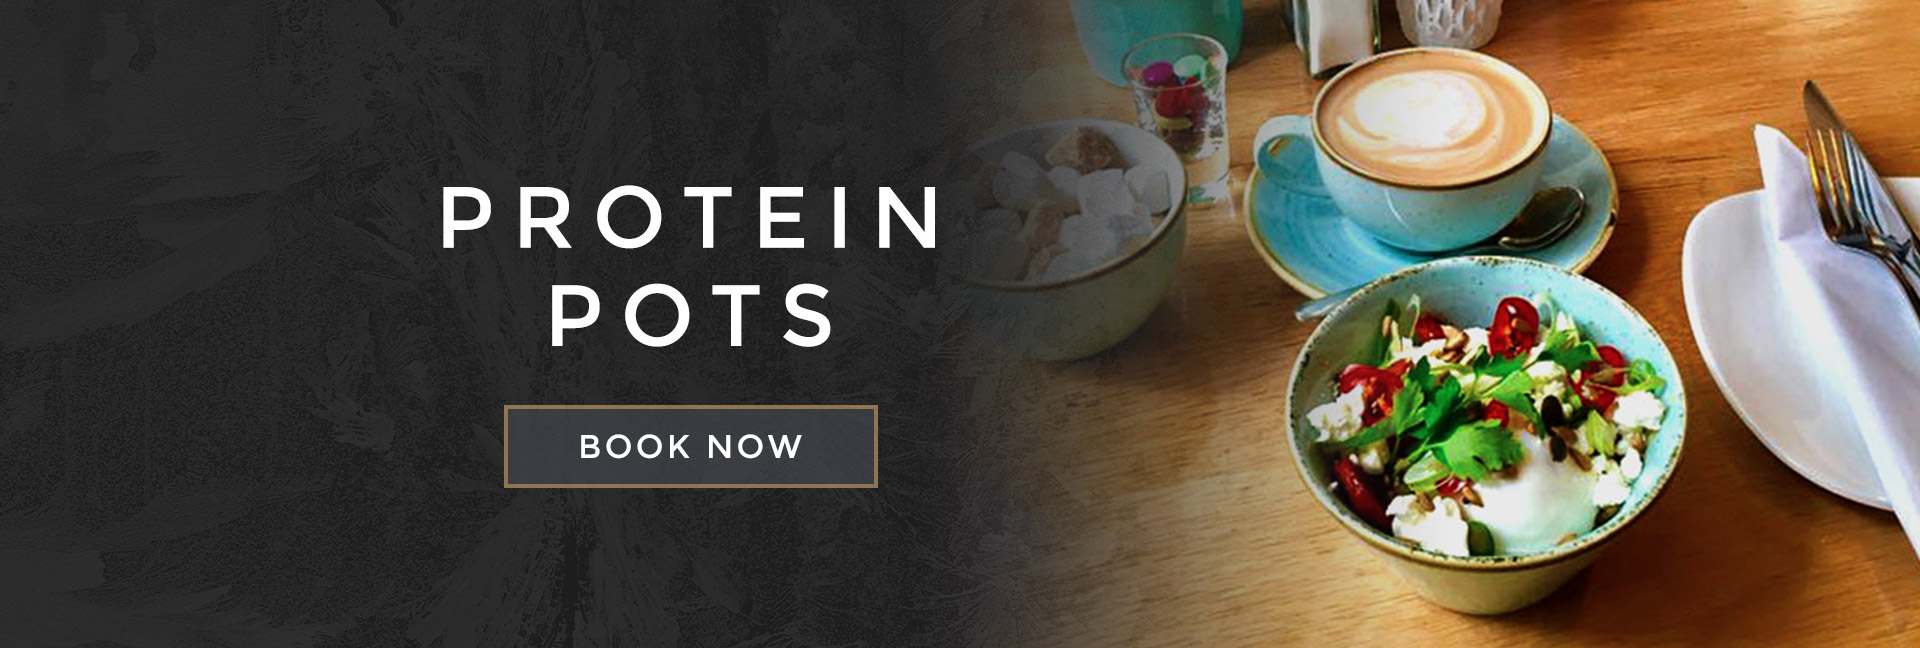 Protein pots at All Bar One Clapham Junction - Book your table